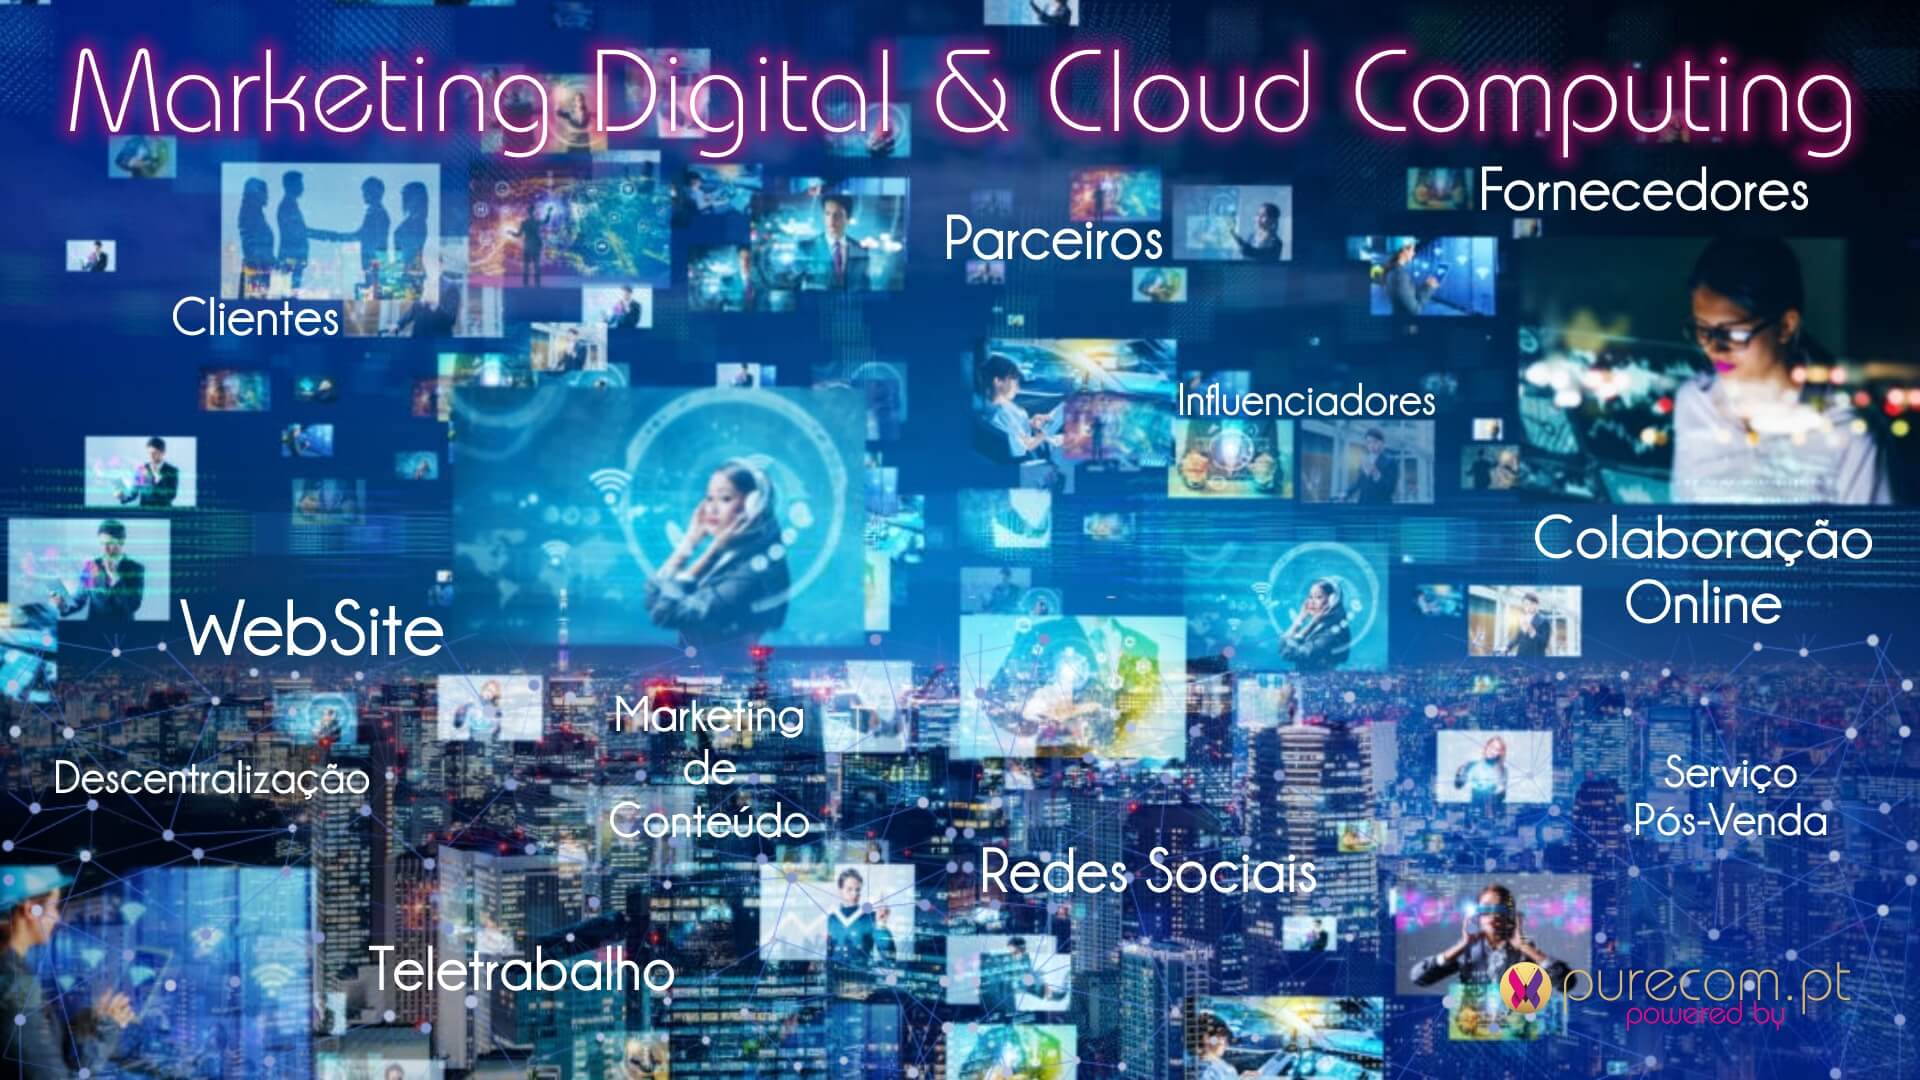 #Marketing Digital #Cloud Computing #Colaboração Online